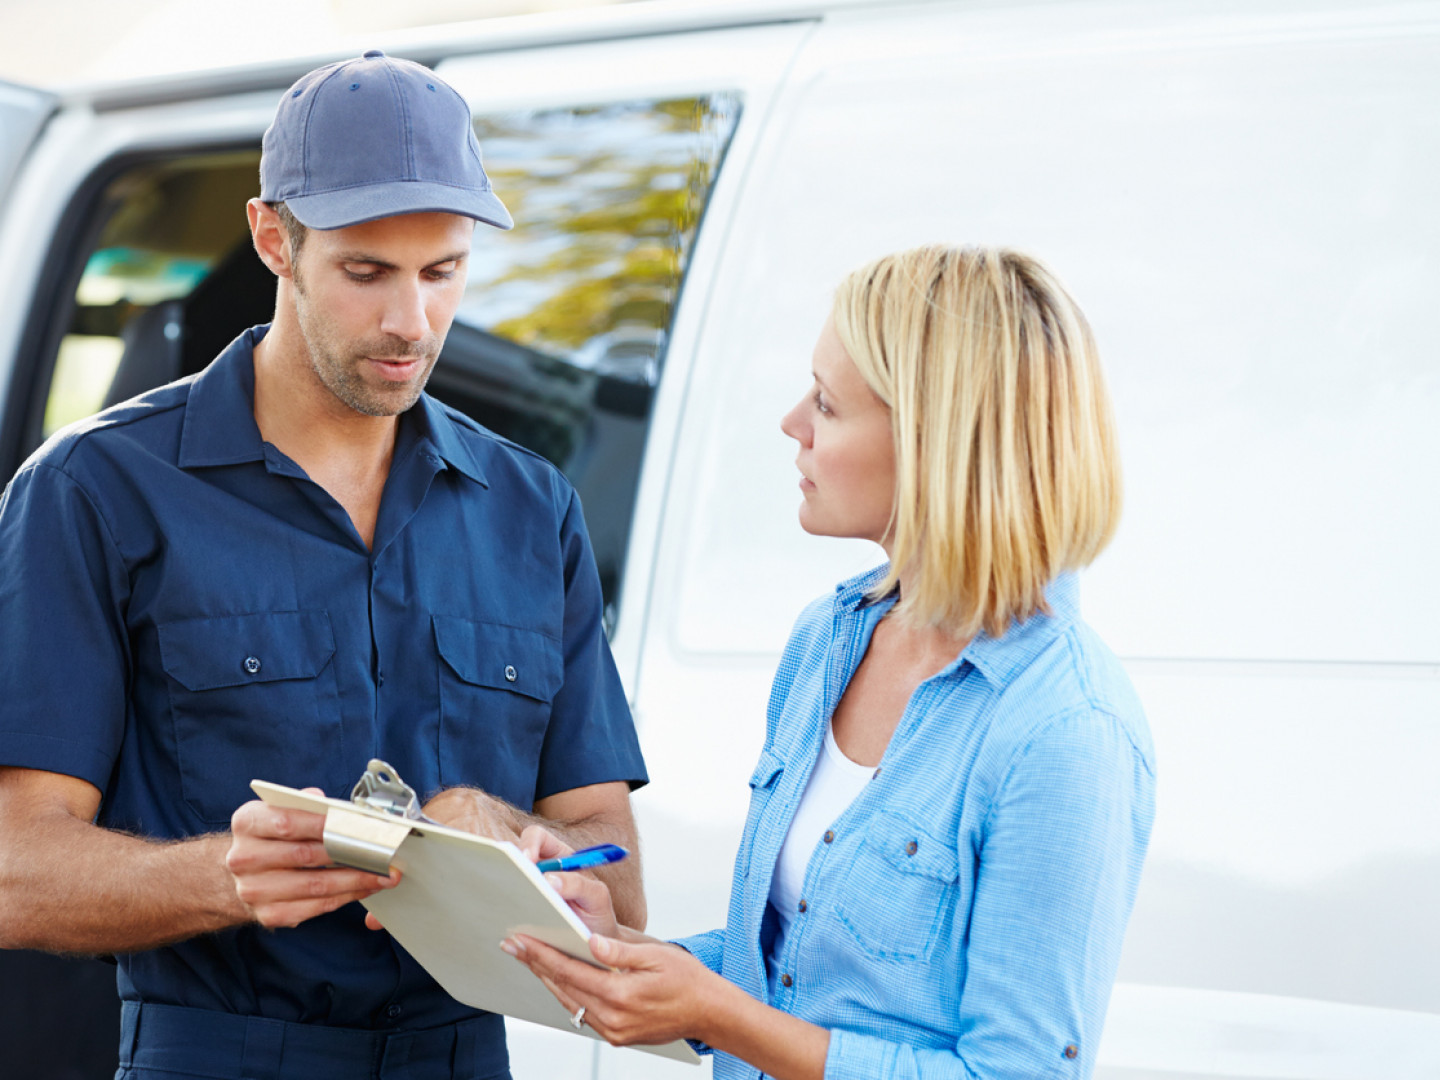 santa ana, ca delivery and courier service